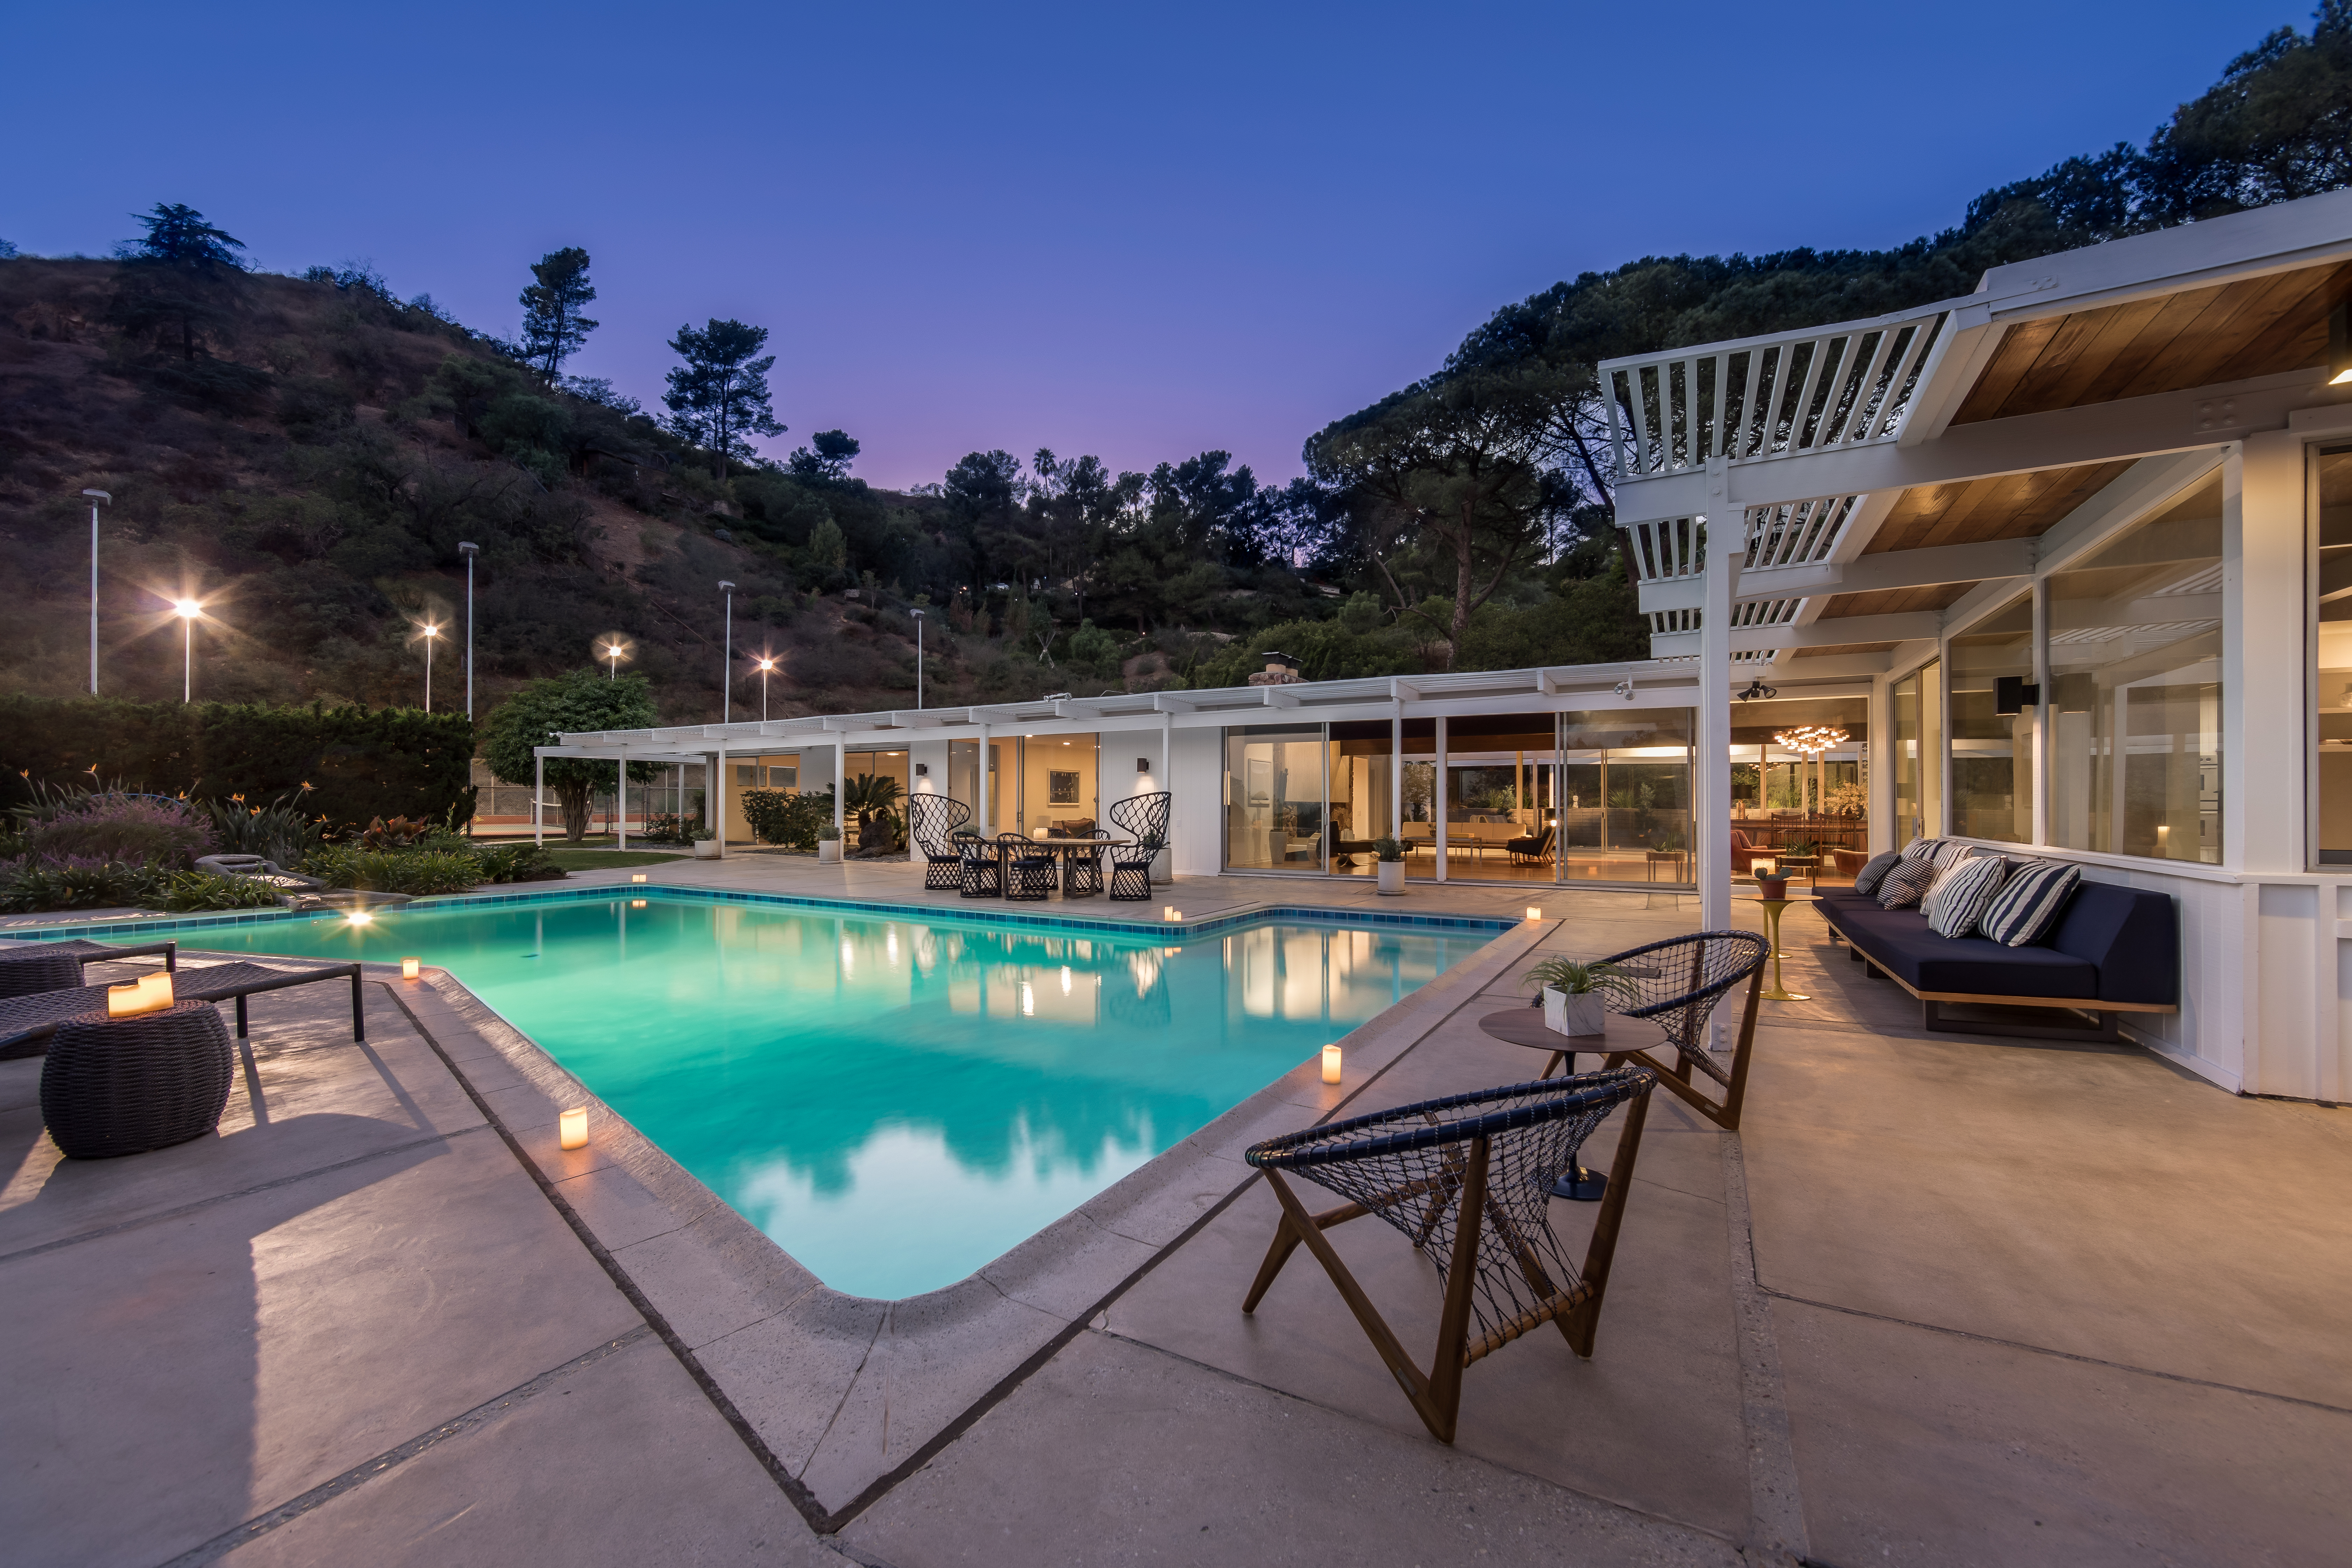 Night shot of backyard with pool and L-shaped flat-roofed home with glass walls surrounding it.